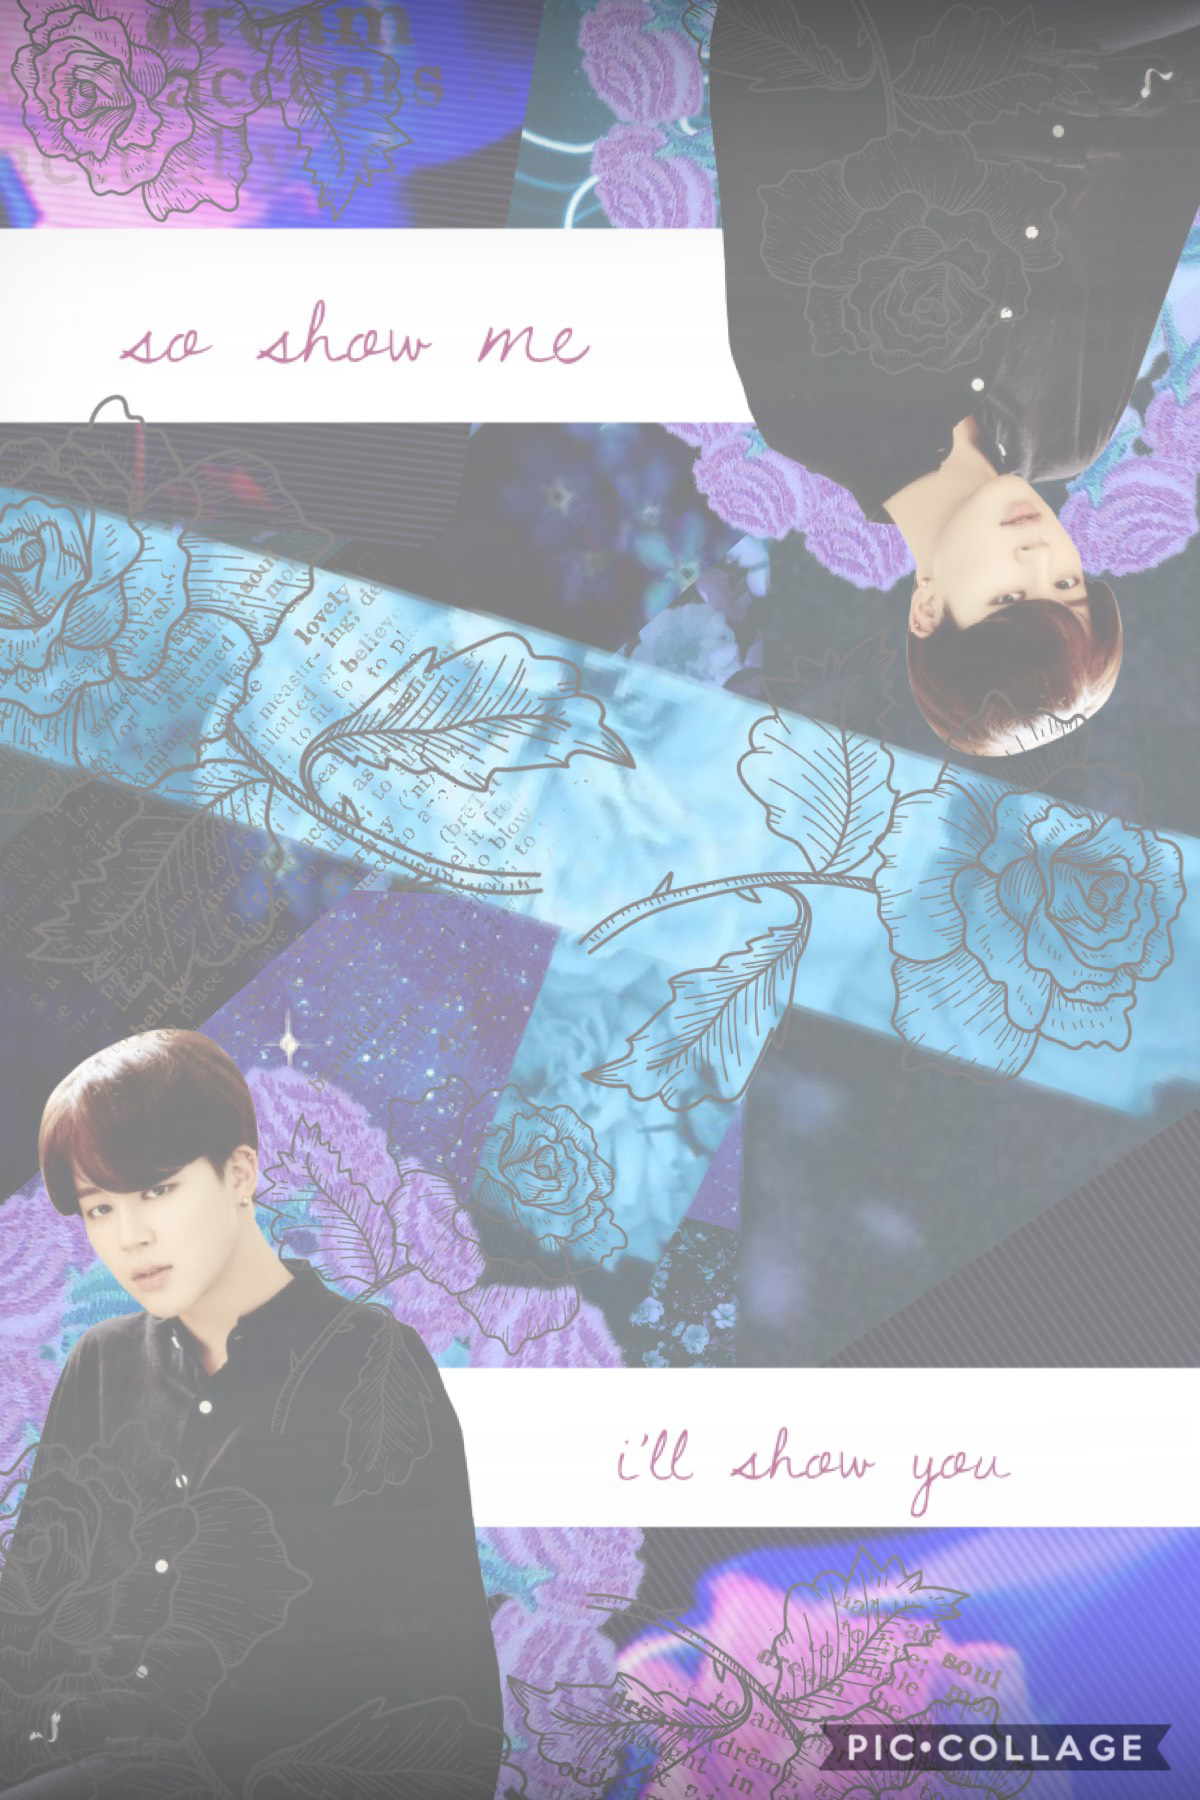 I'm not sure how I feel about this...What do u guys think? I tried the quote cuz Magic Shop got me screaming but....